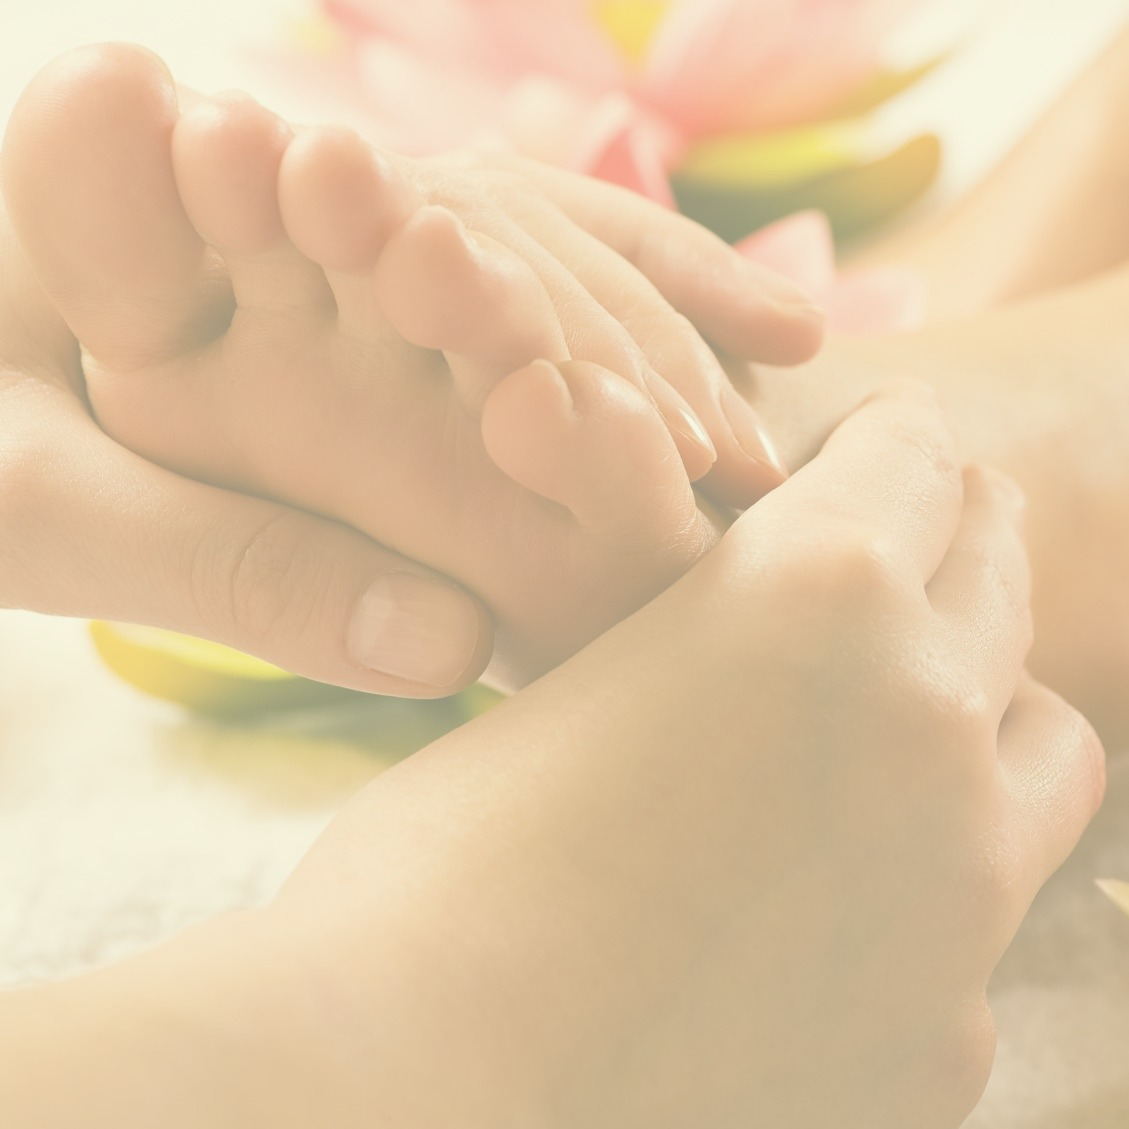 reflexology killington